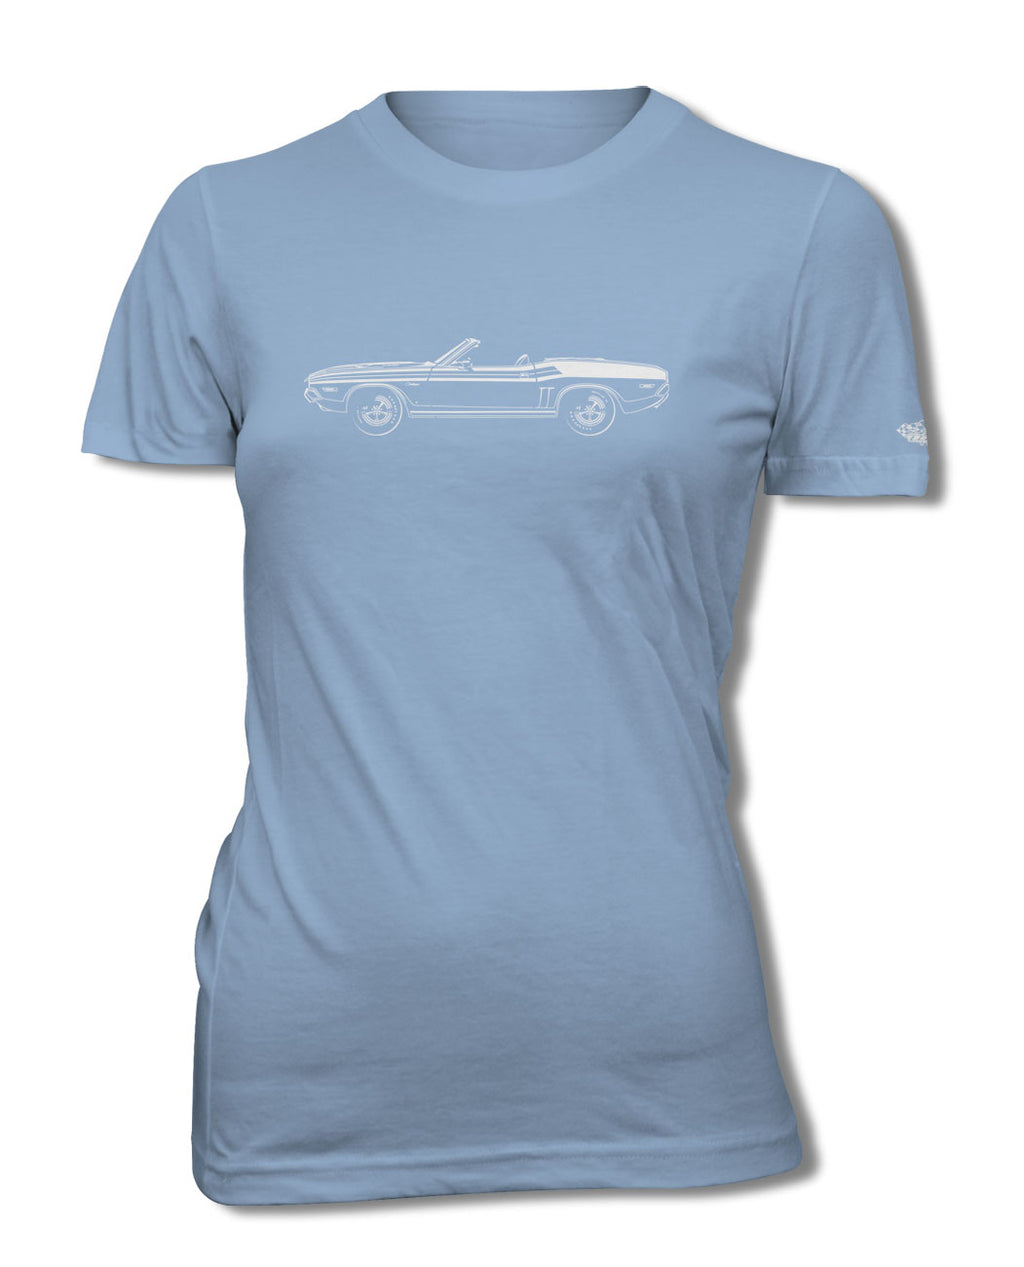 1971 Dodge Challenger with Stripes Convertible T-Shirt - Women - Side View